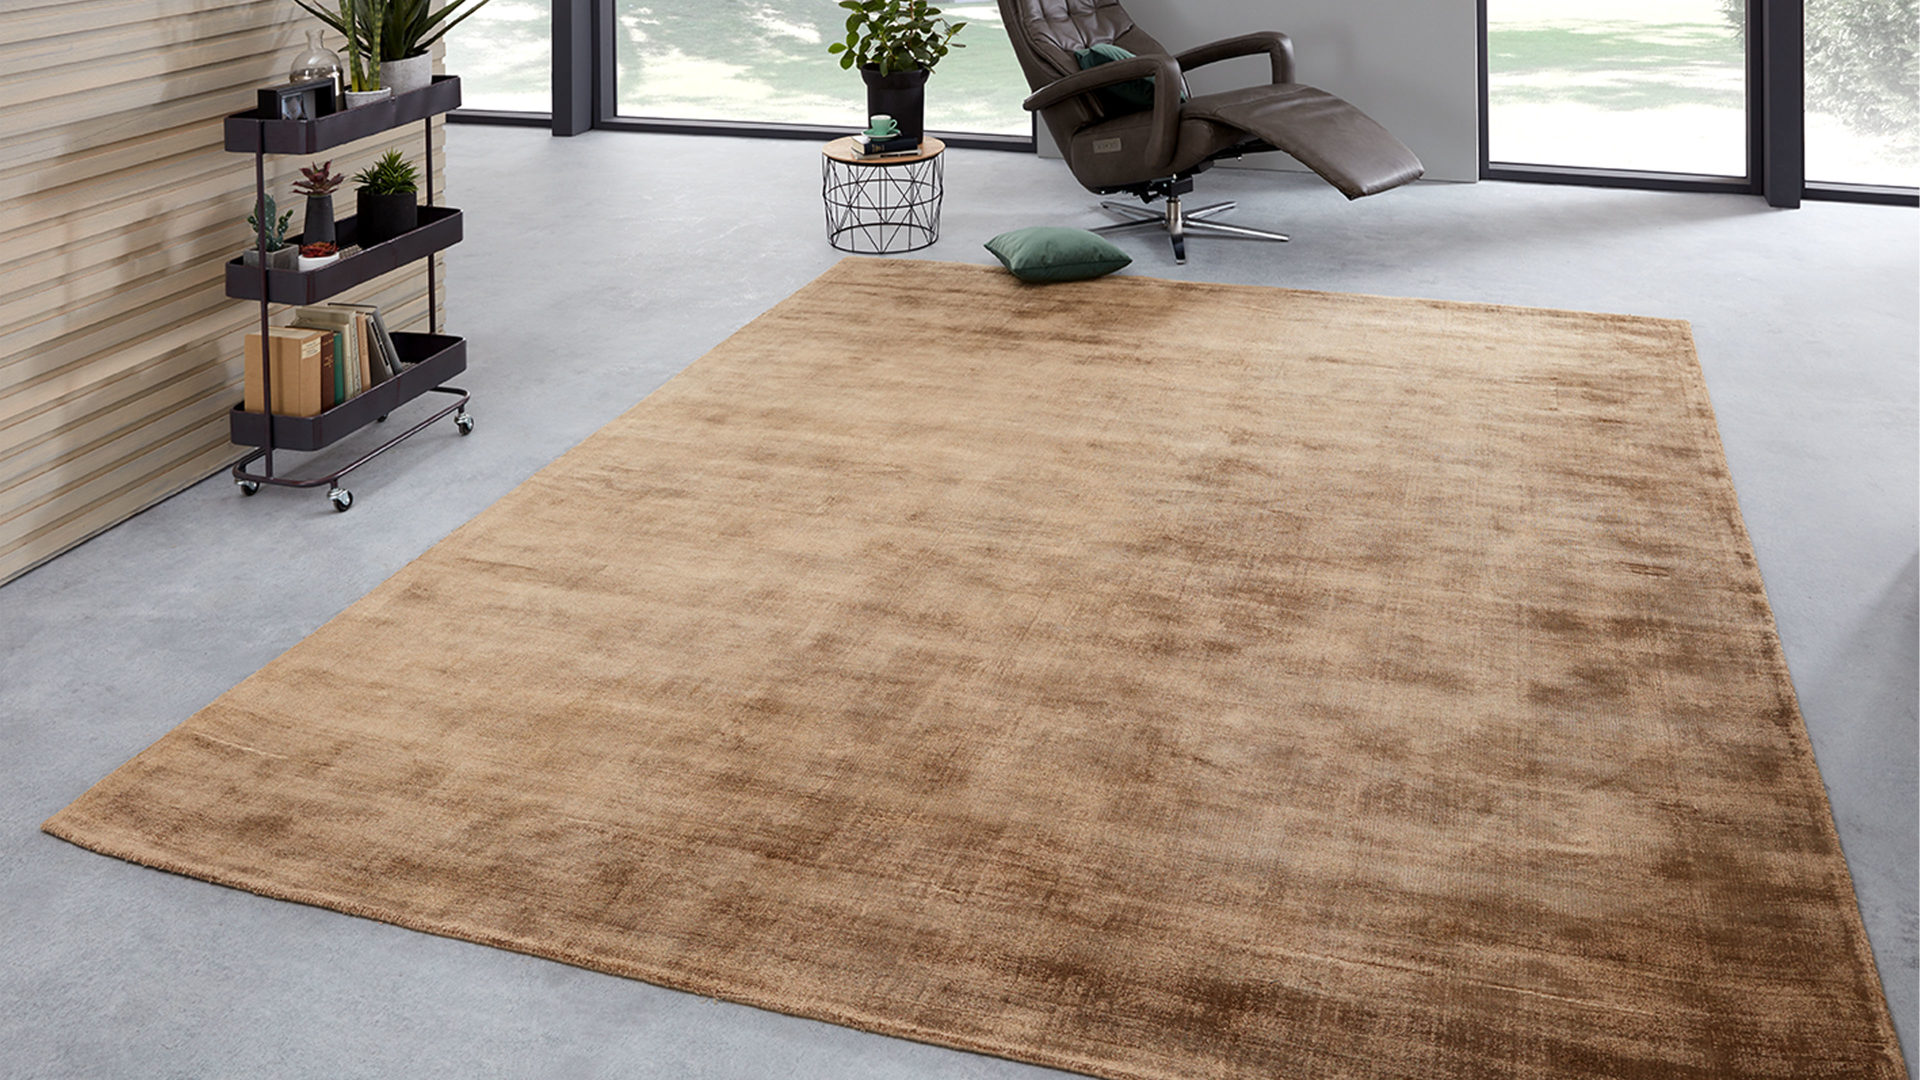 Handwebteppich Interliving aus Textil in Braun Interliving Teppich Serie A-8040 Camelfarben – ca. 200 x 300 cm